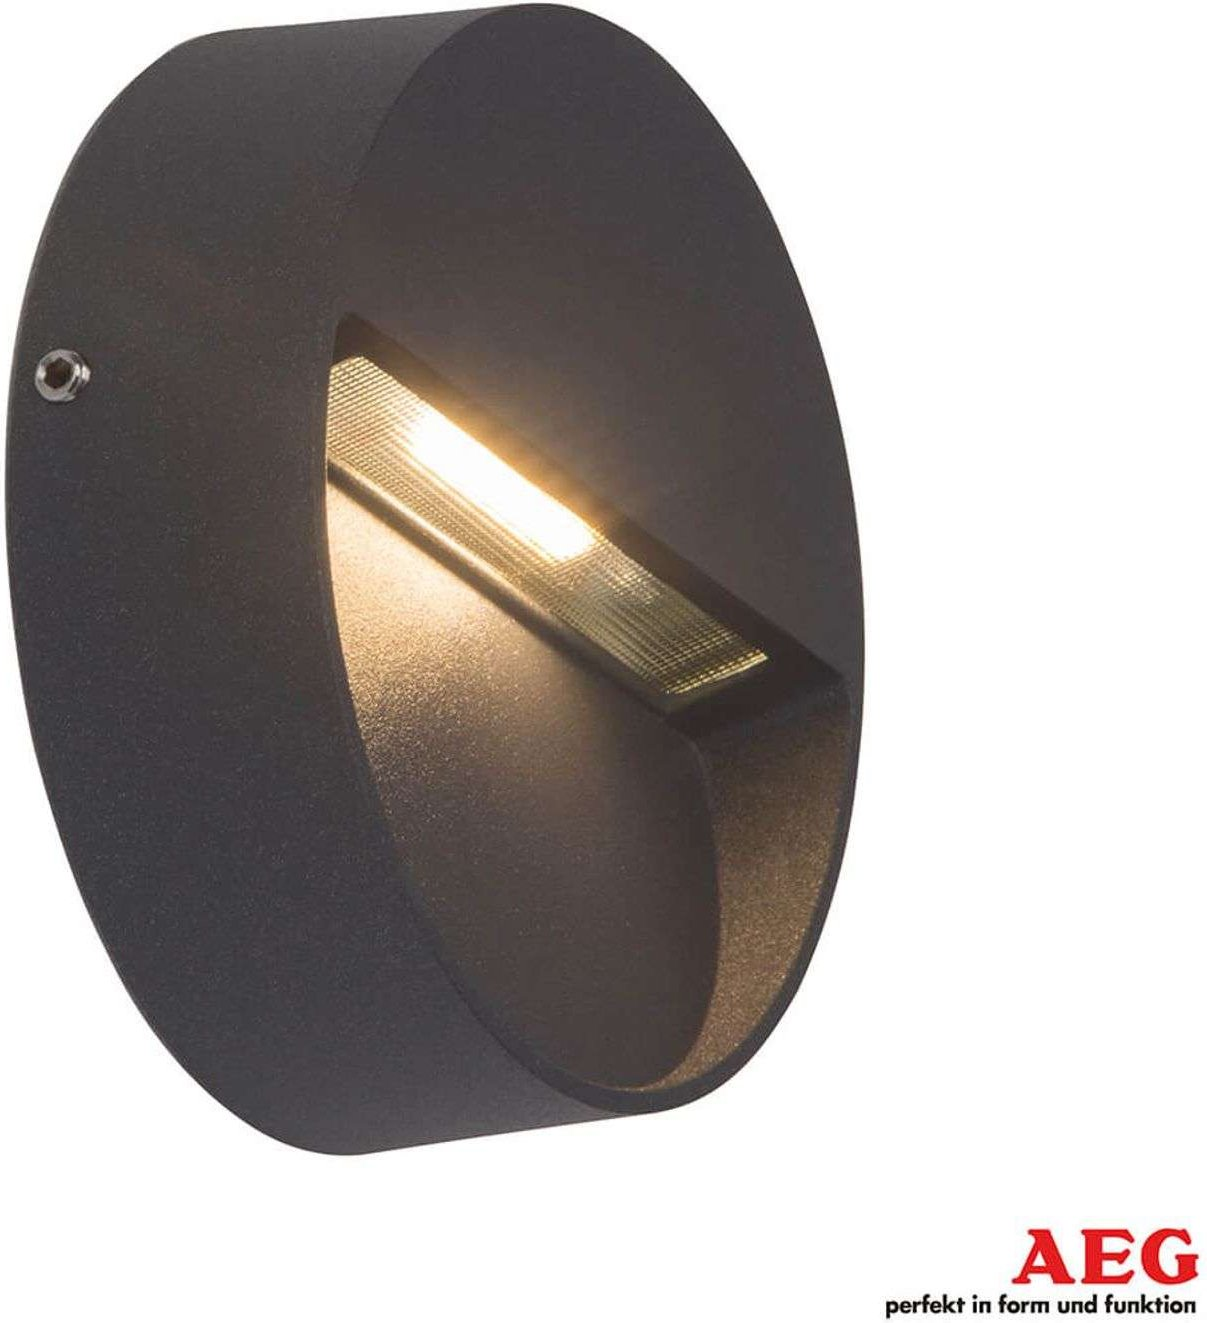 Round Front LED outdoor wall lamp in anthracite